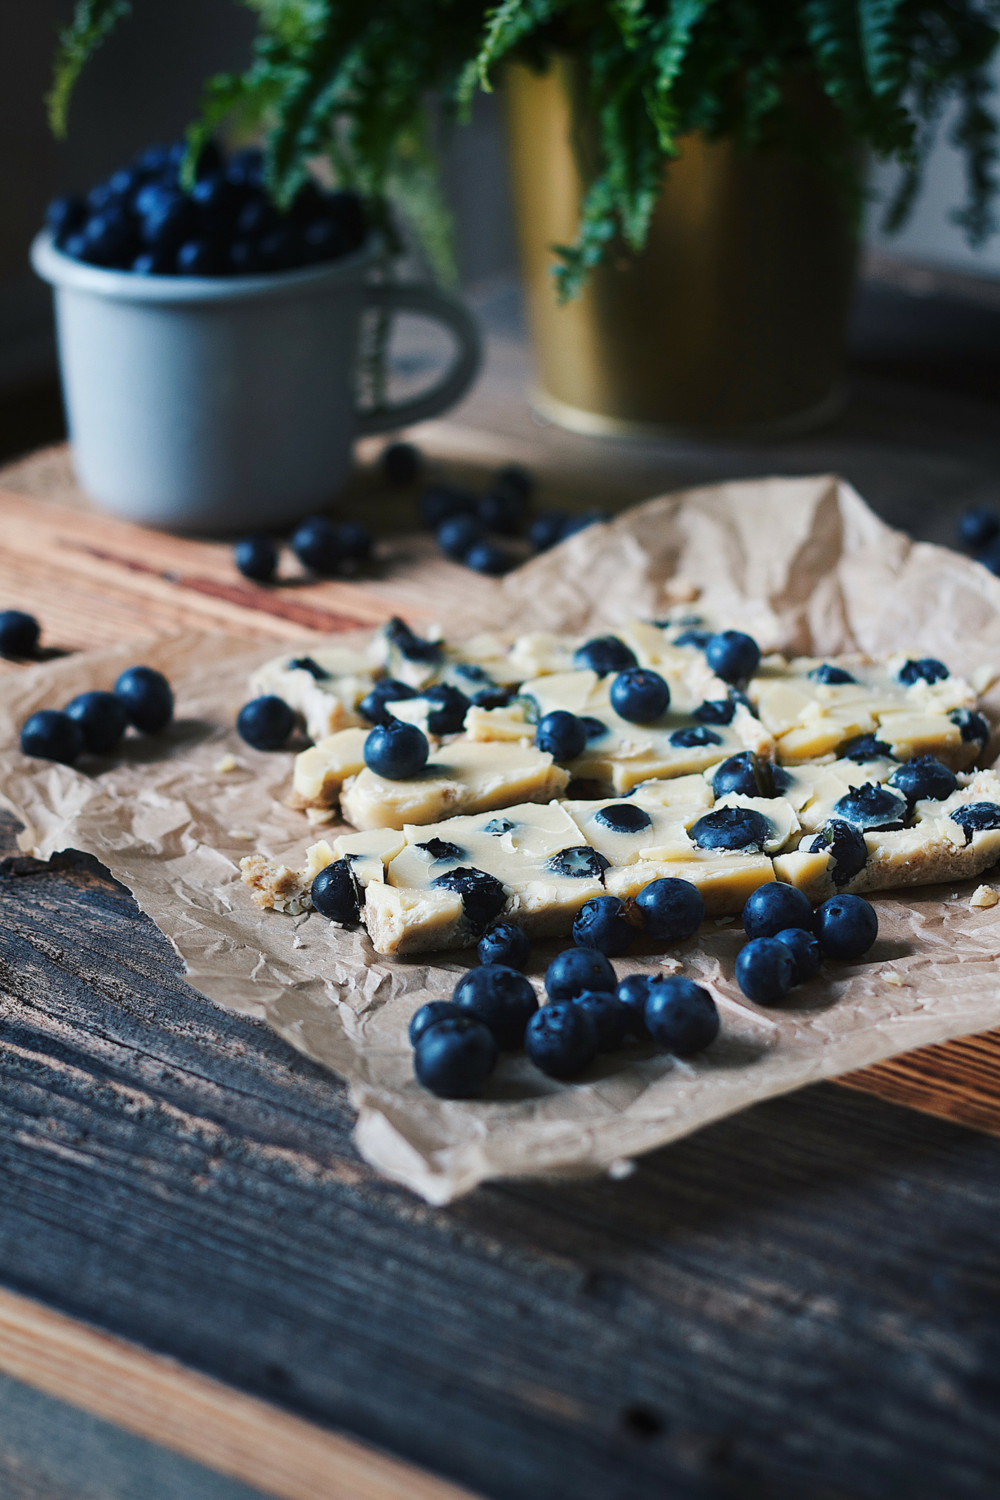 Homemade White Chocolate with Blueberries - sweetened with Dates - Recipe - Grain-free, Gluten-free and Sugar-free - Low Carb, Paleo and Keto - Fit Chick Bakery